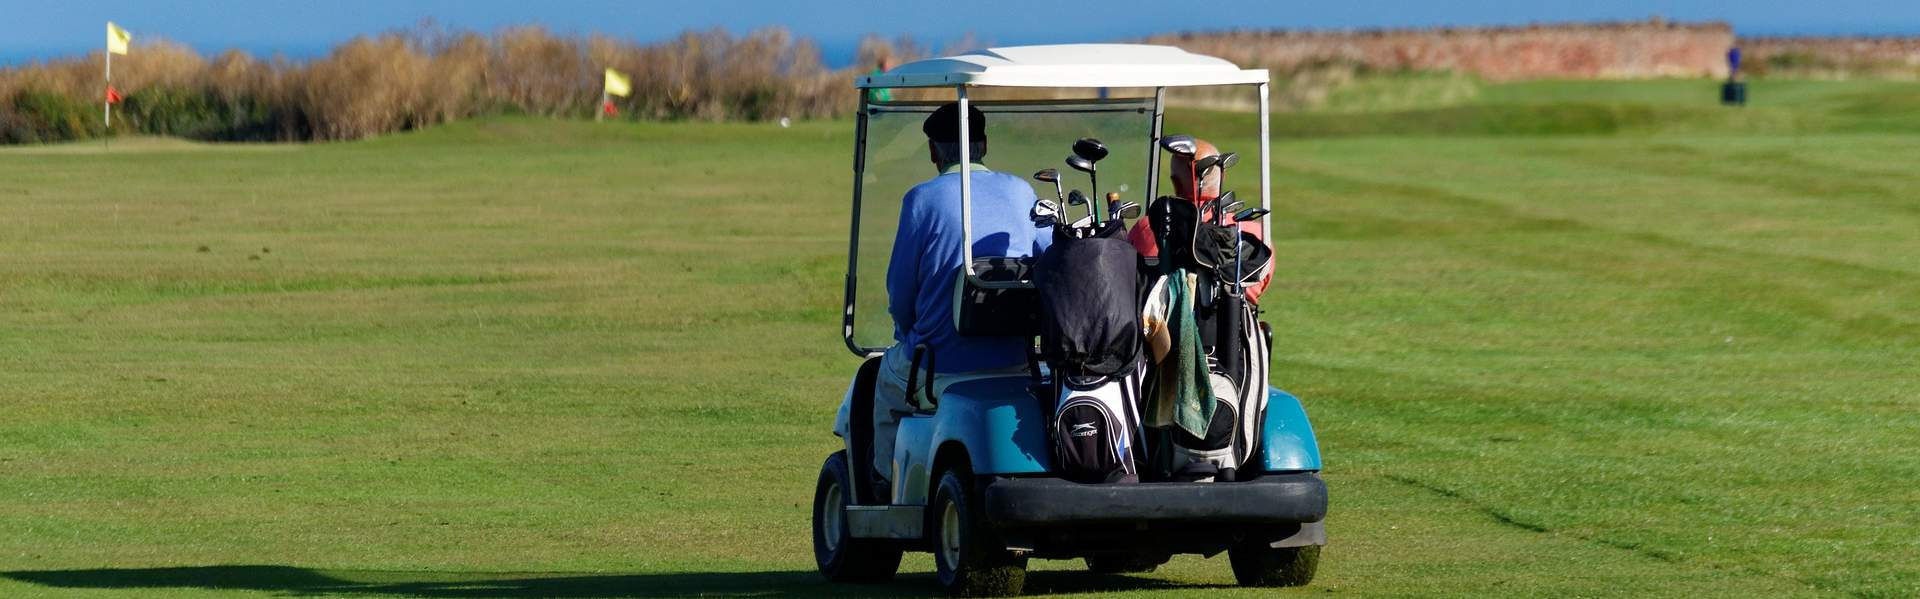 Using a golf buggy in St Andrews